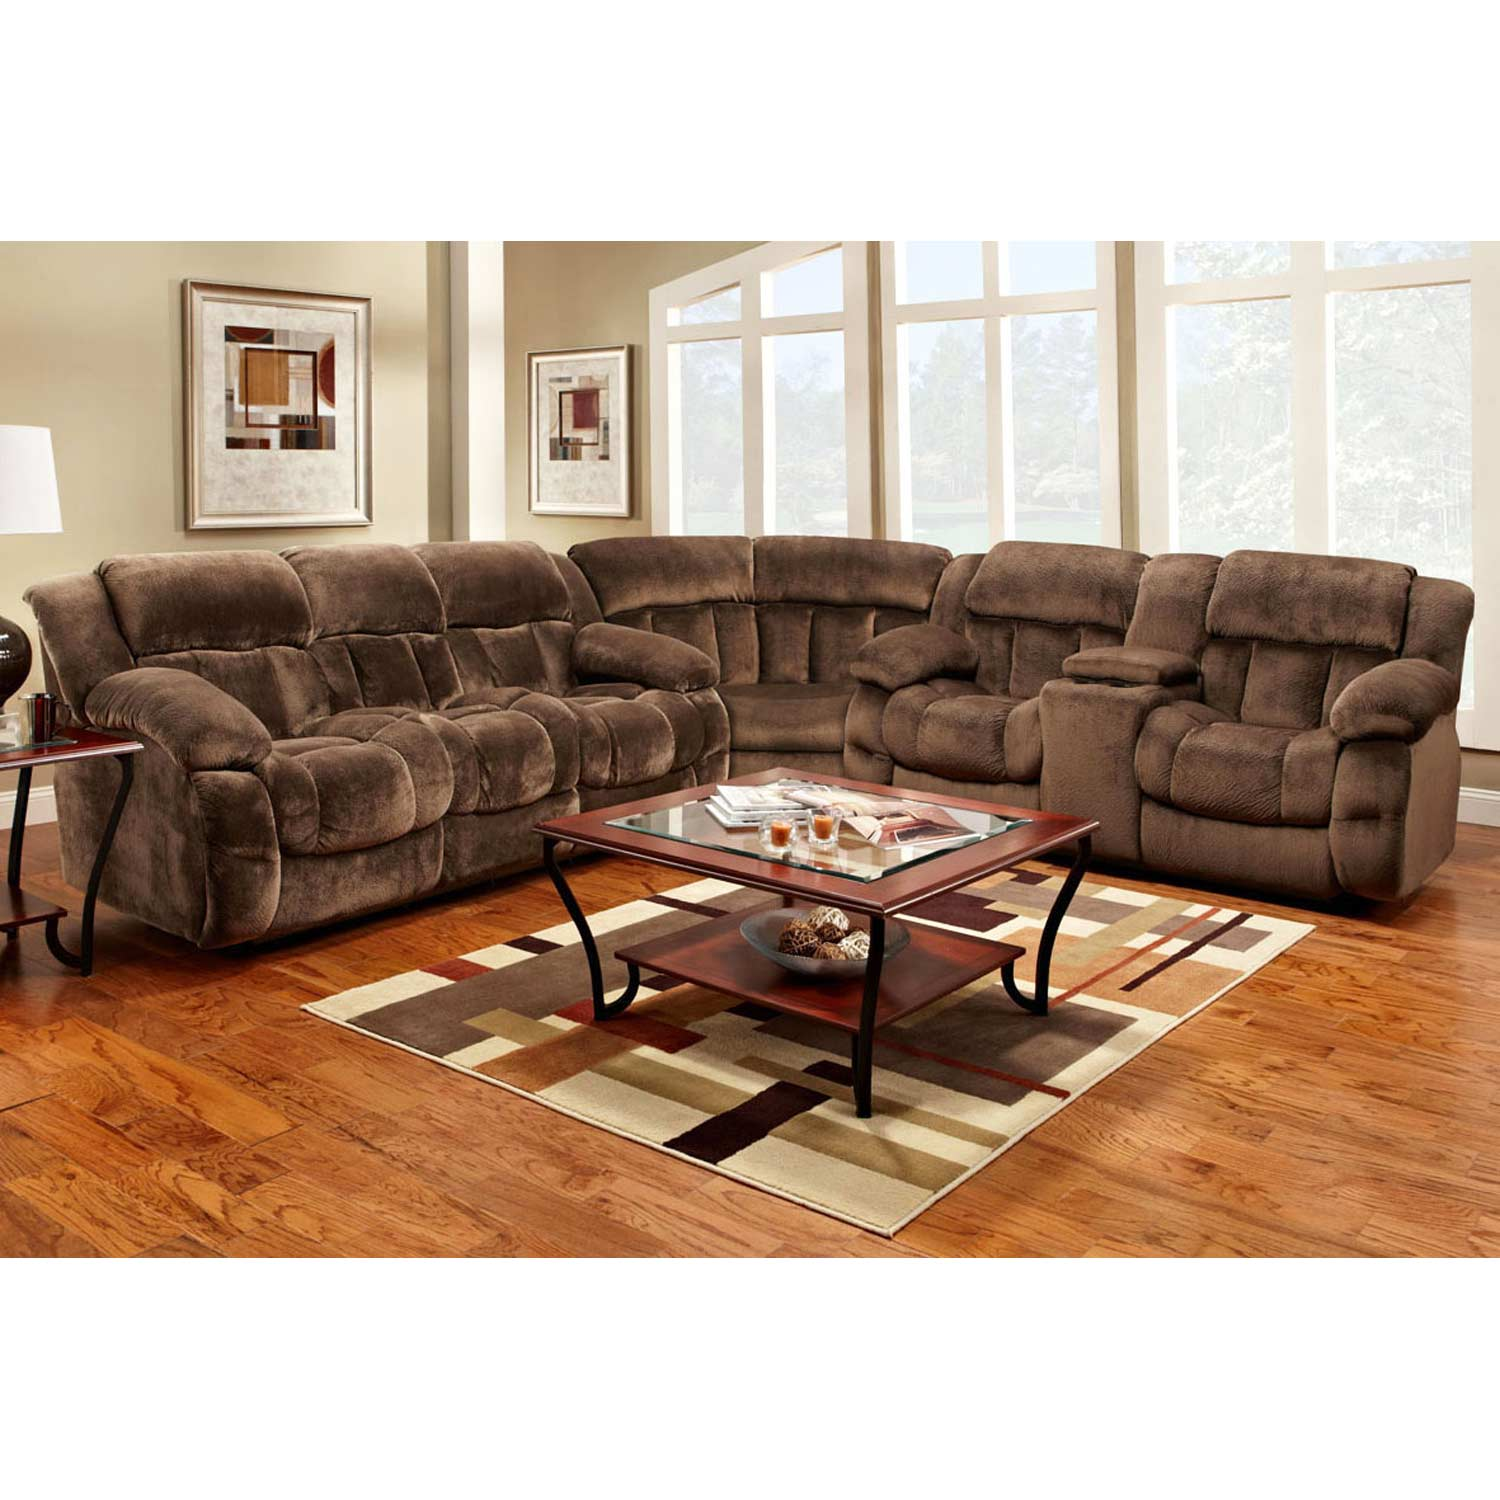 Leather Sectional Sofas Charlotte Nc: Charlotte Reclining Sectional Sofa